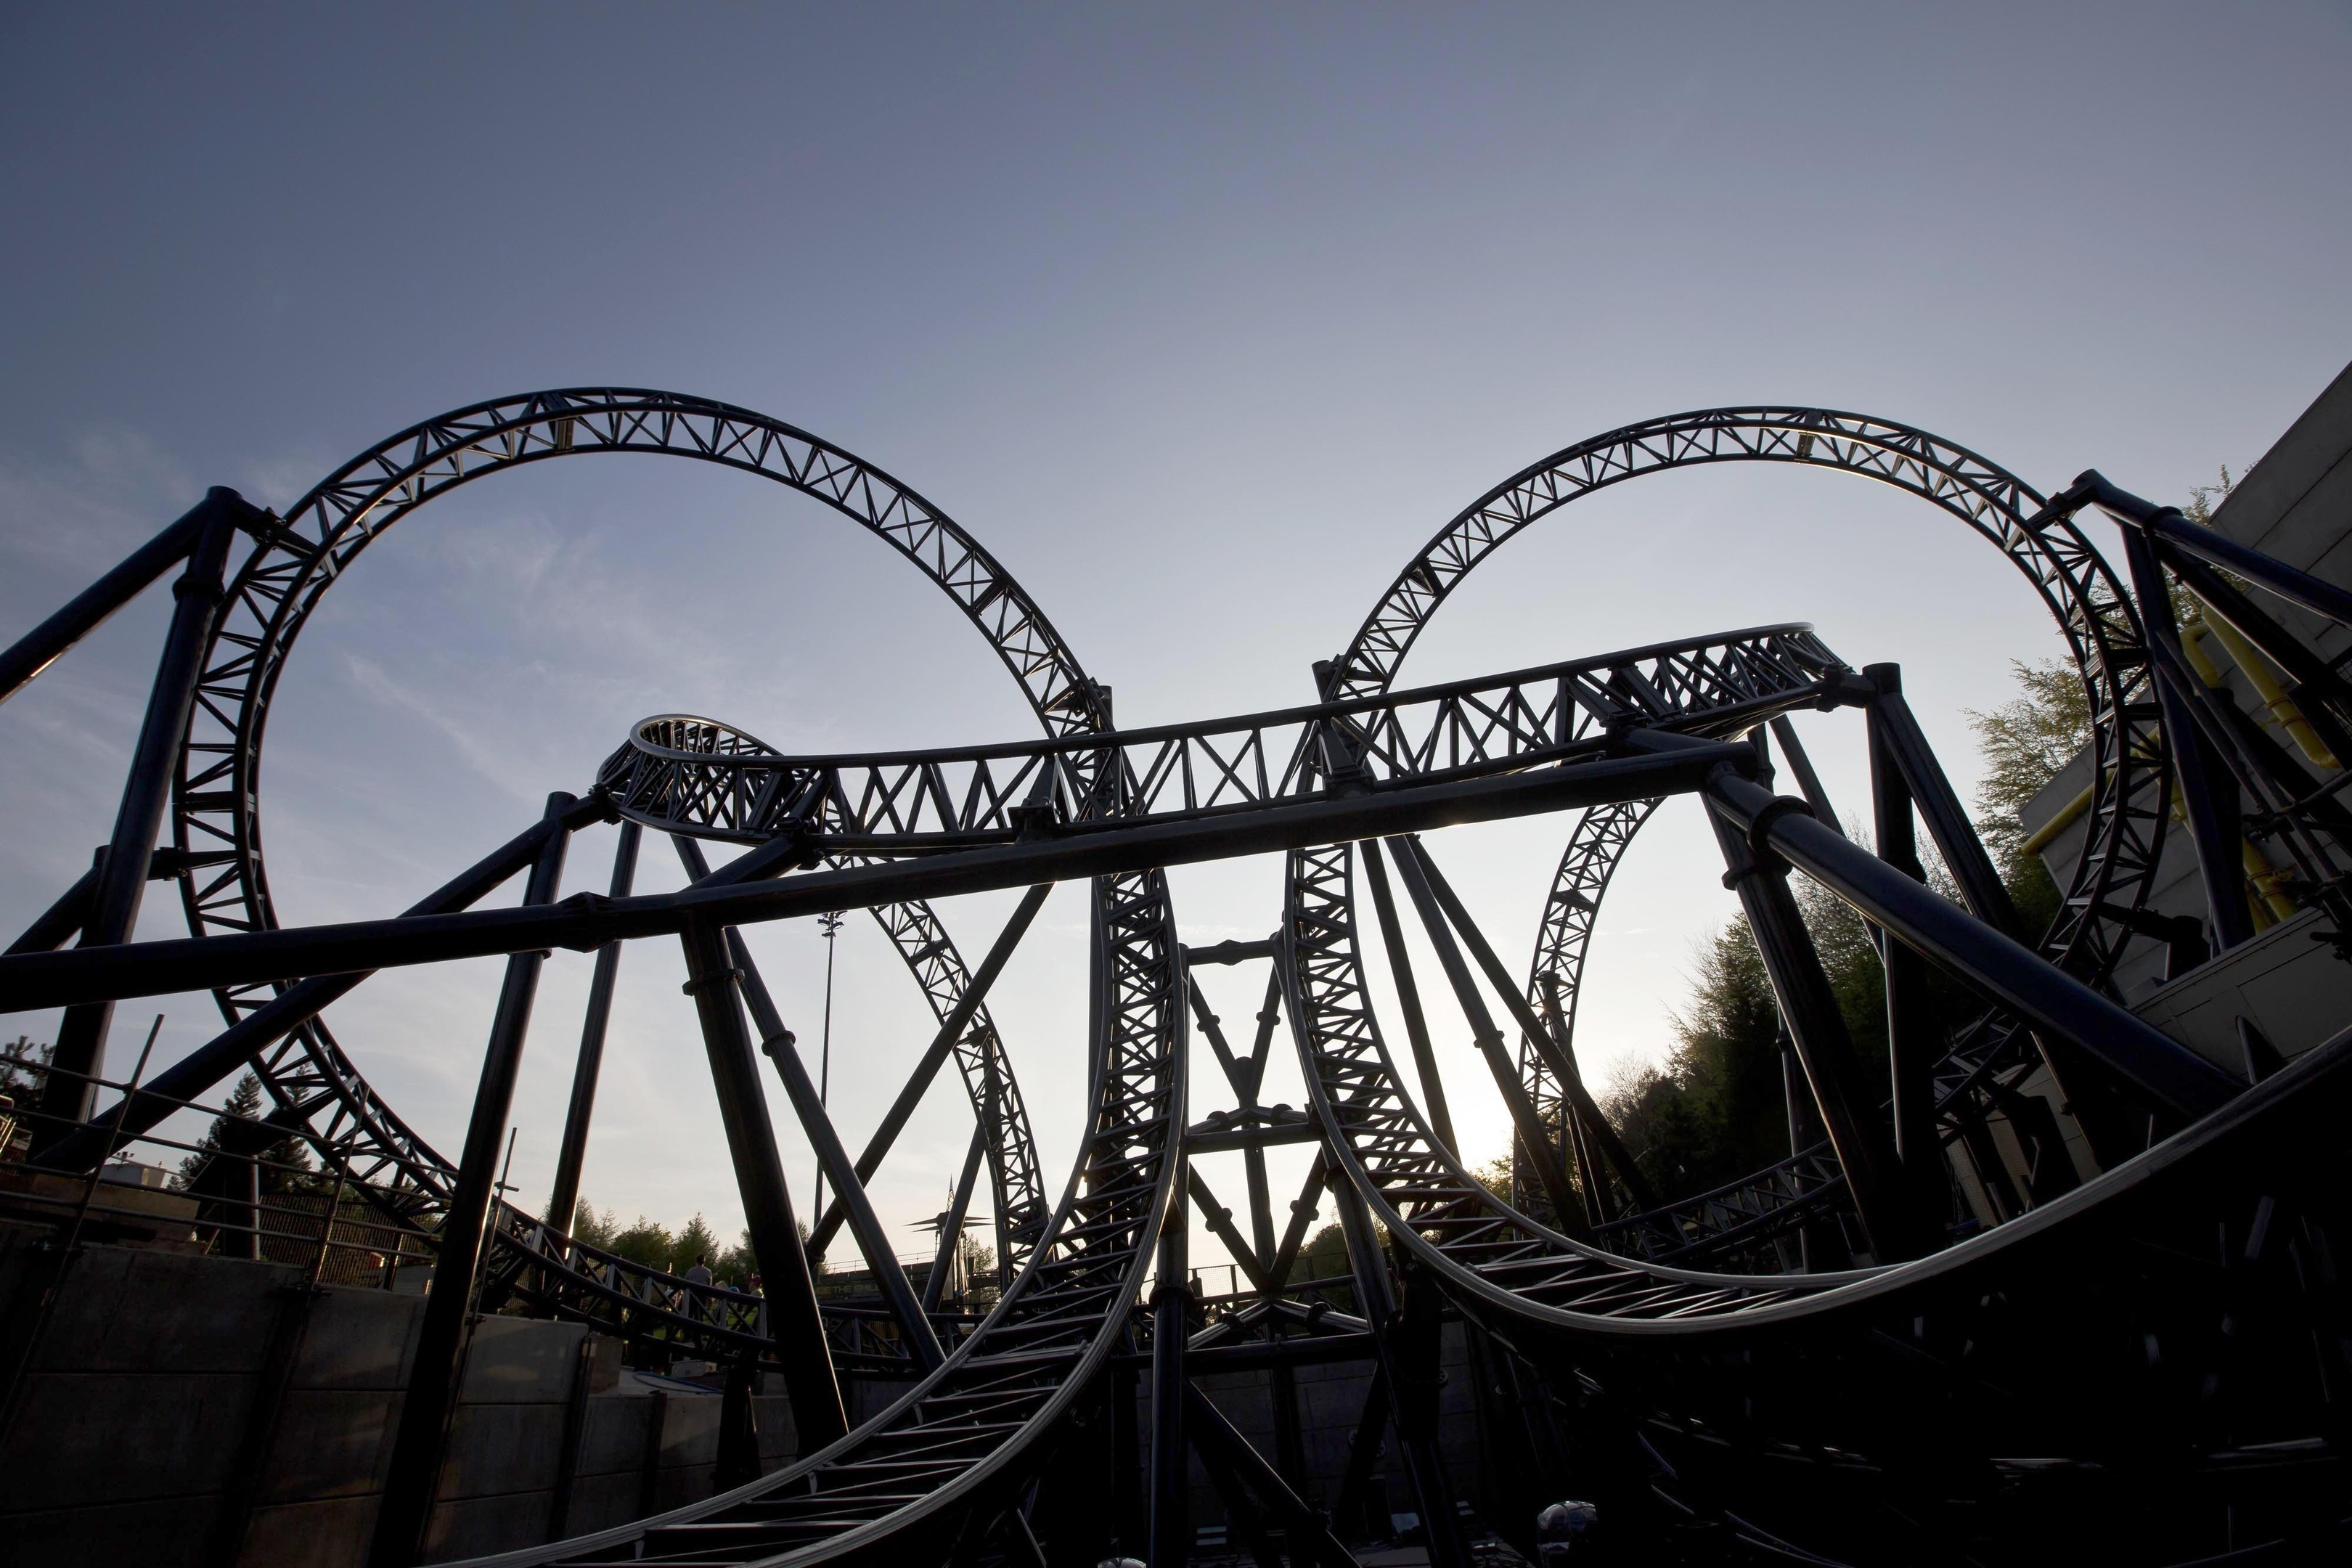 The Smiler ride at Alton Towers.